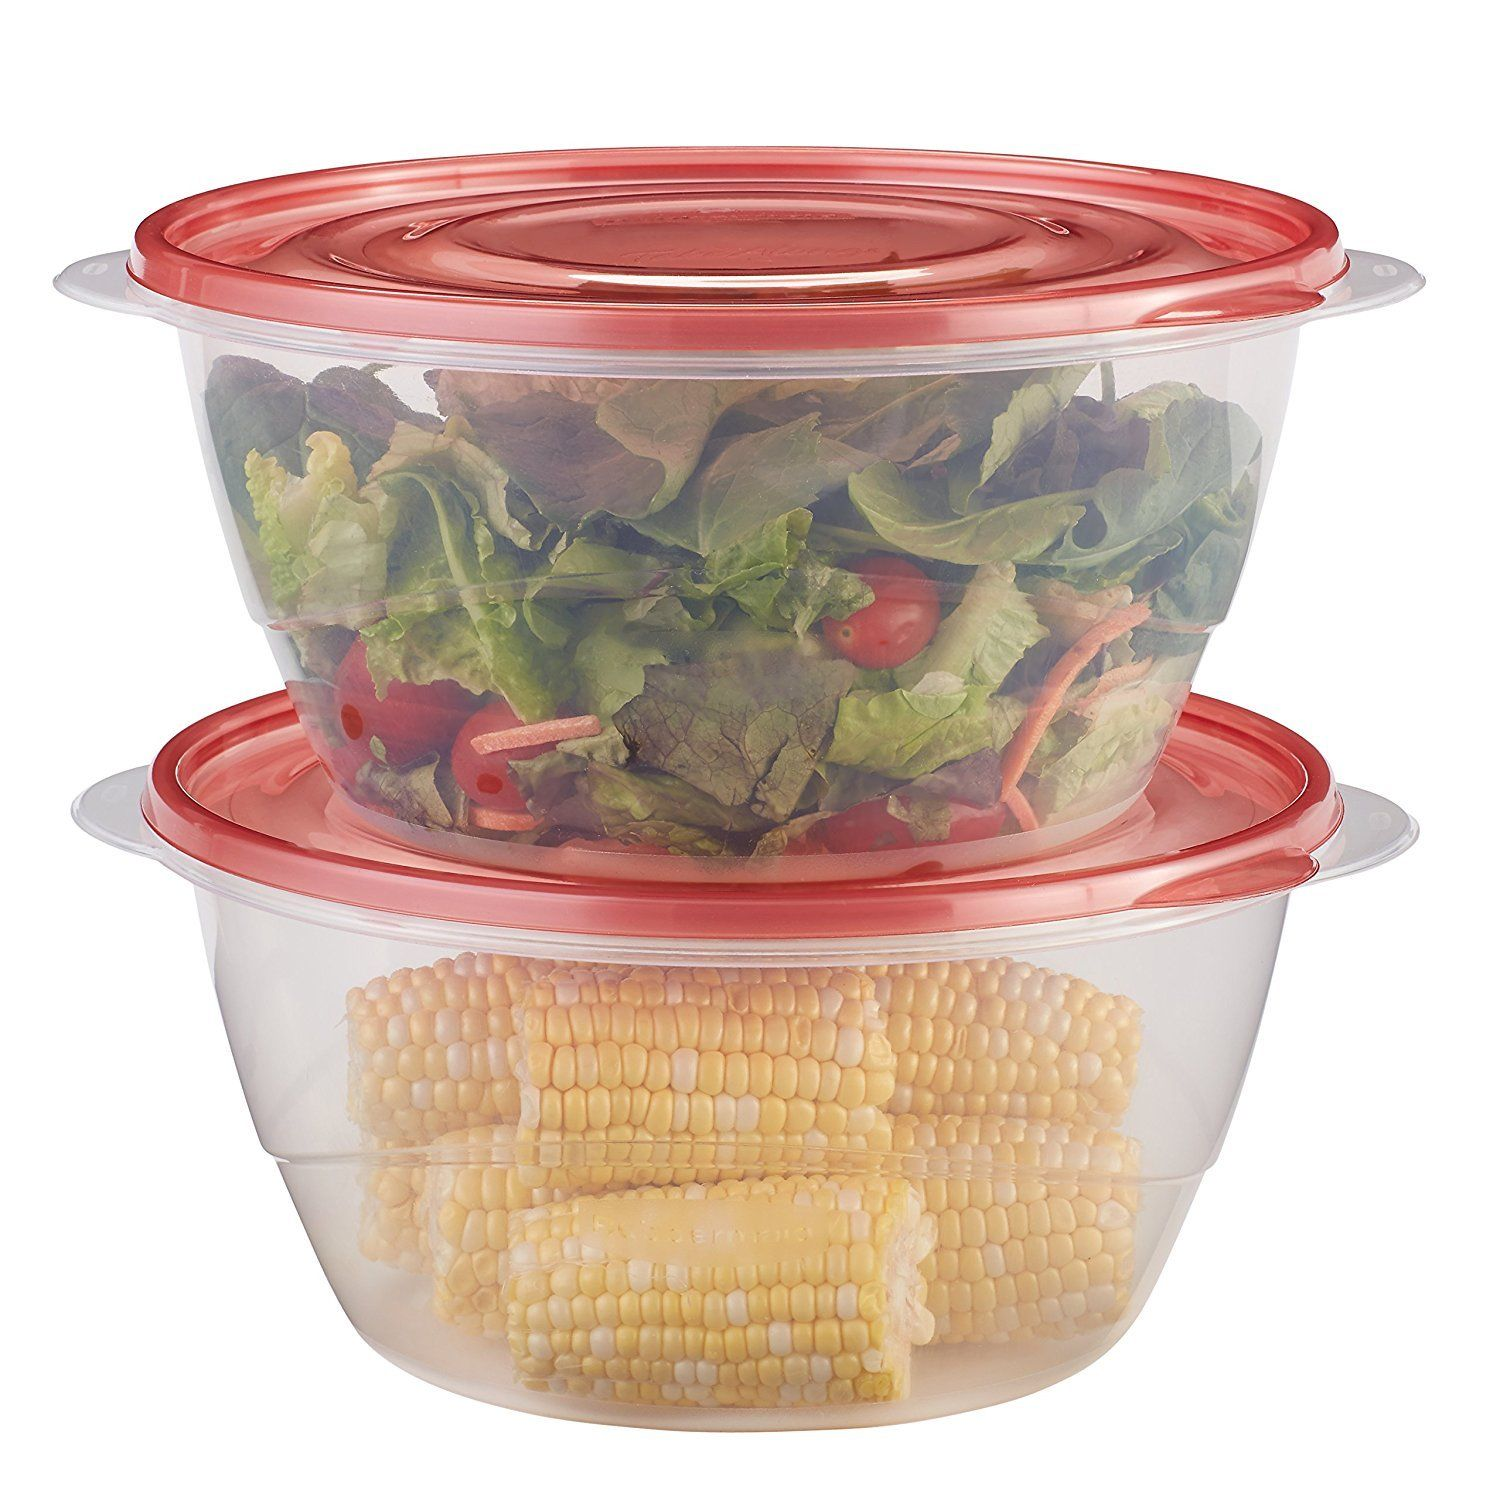 Rubbermaid TakeAlongs Food Storage Container, Serving Bowls, 13 Cup, 2 Pack, Red 1